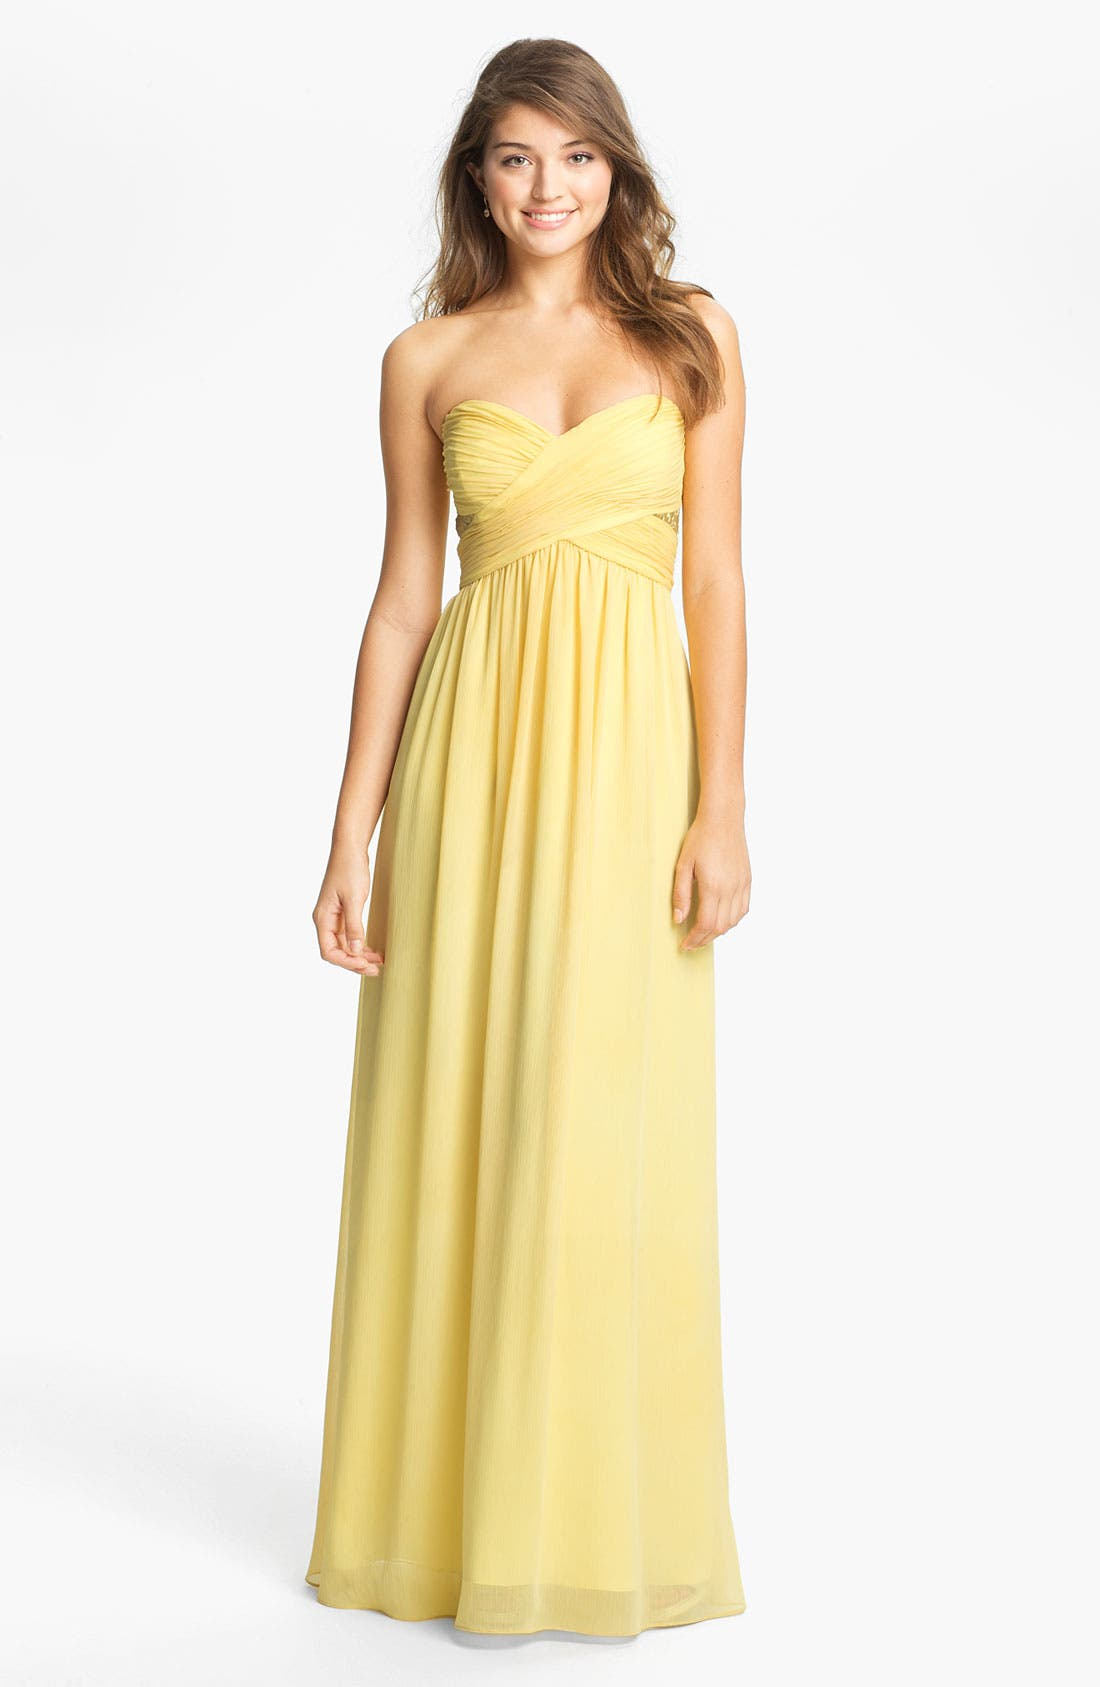 Main Image - Max & Cleo Strapless Chiffon Gown